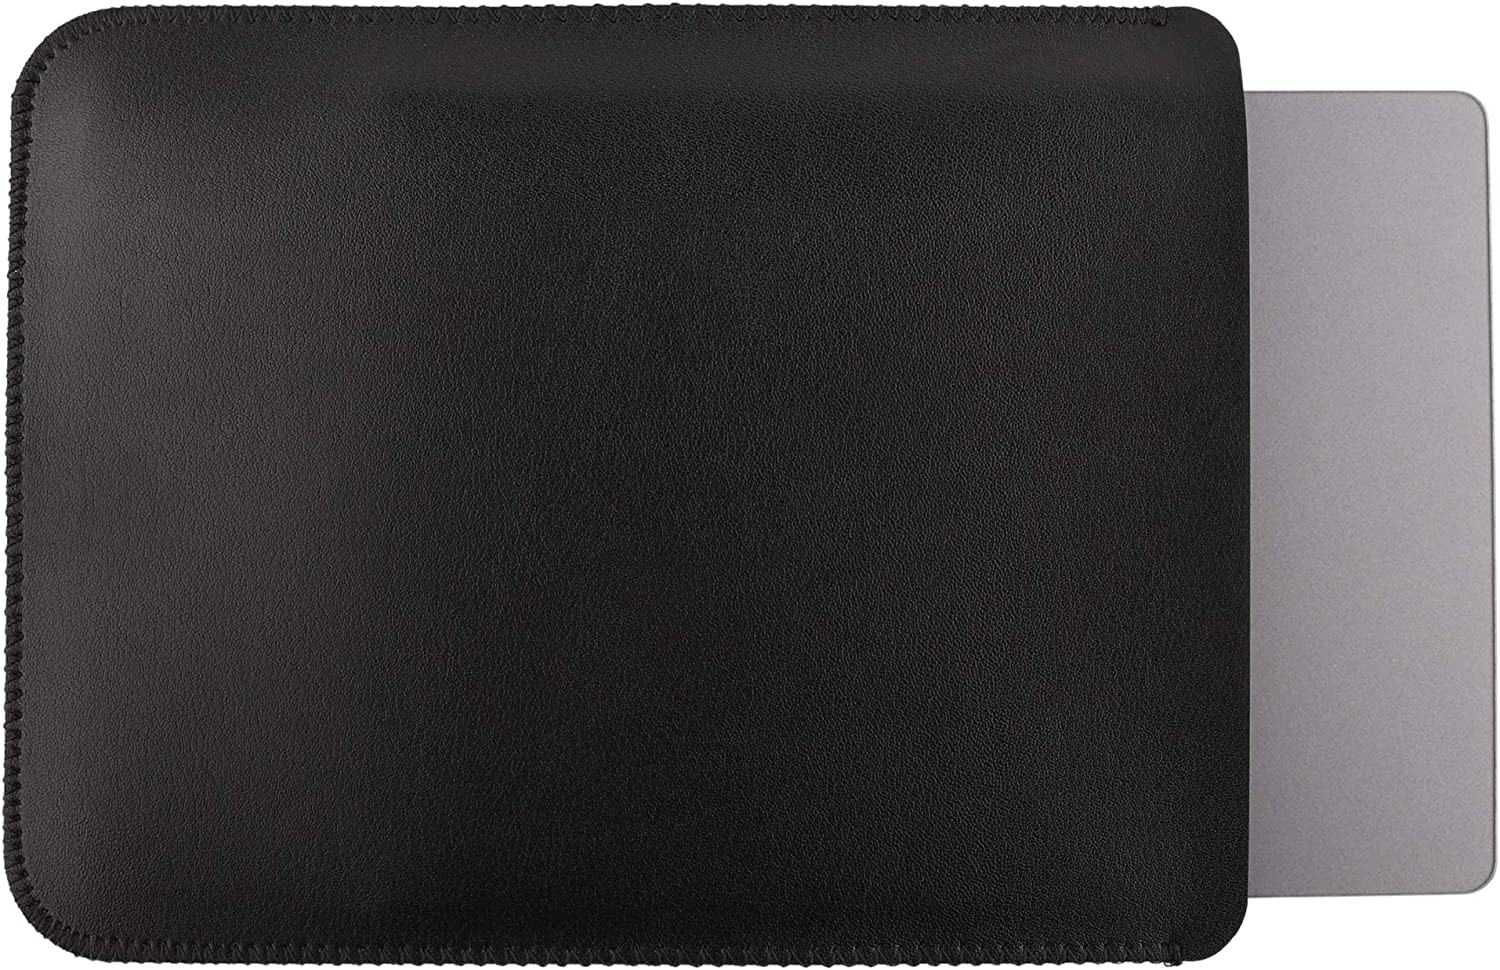 GuardV Leather Series for Apple Magic Trackpad 2 - Protective Sleeve Cover Case Pouch (Black)